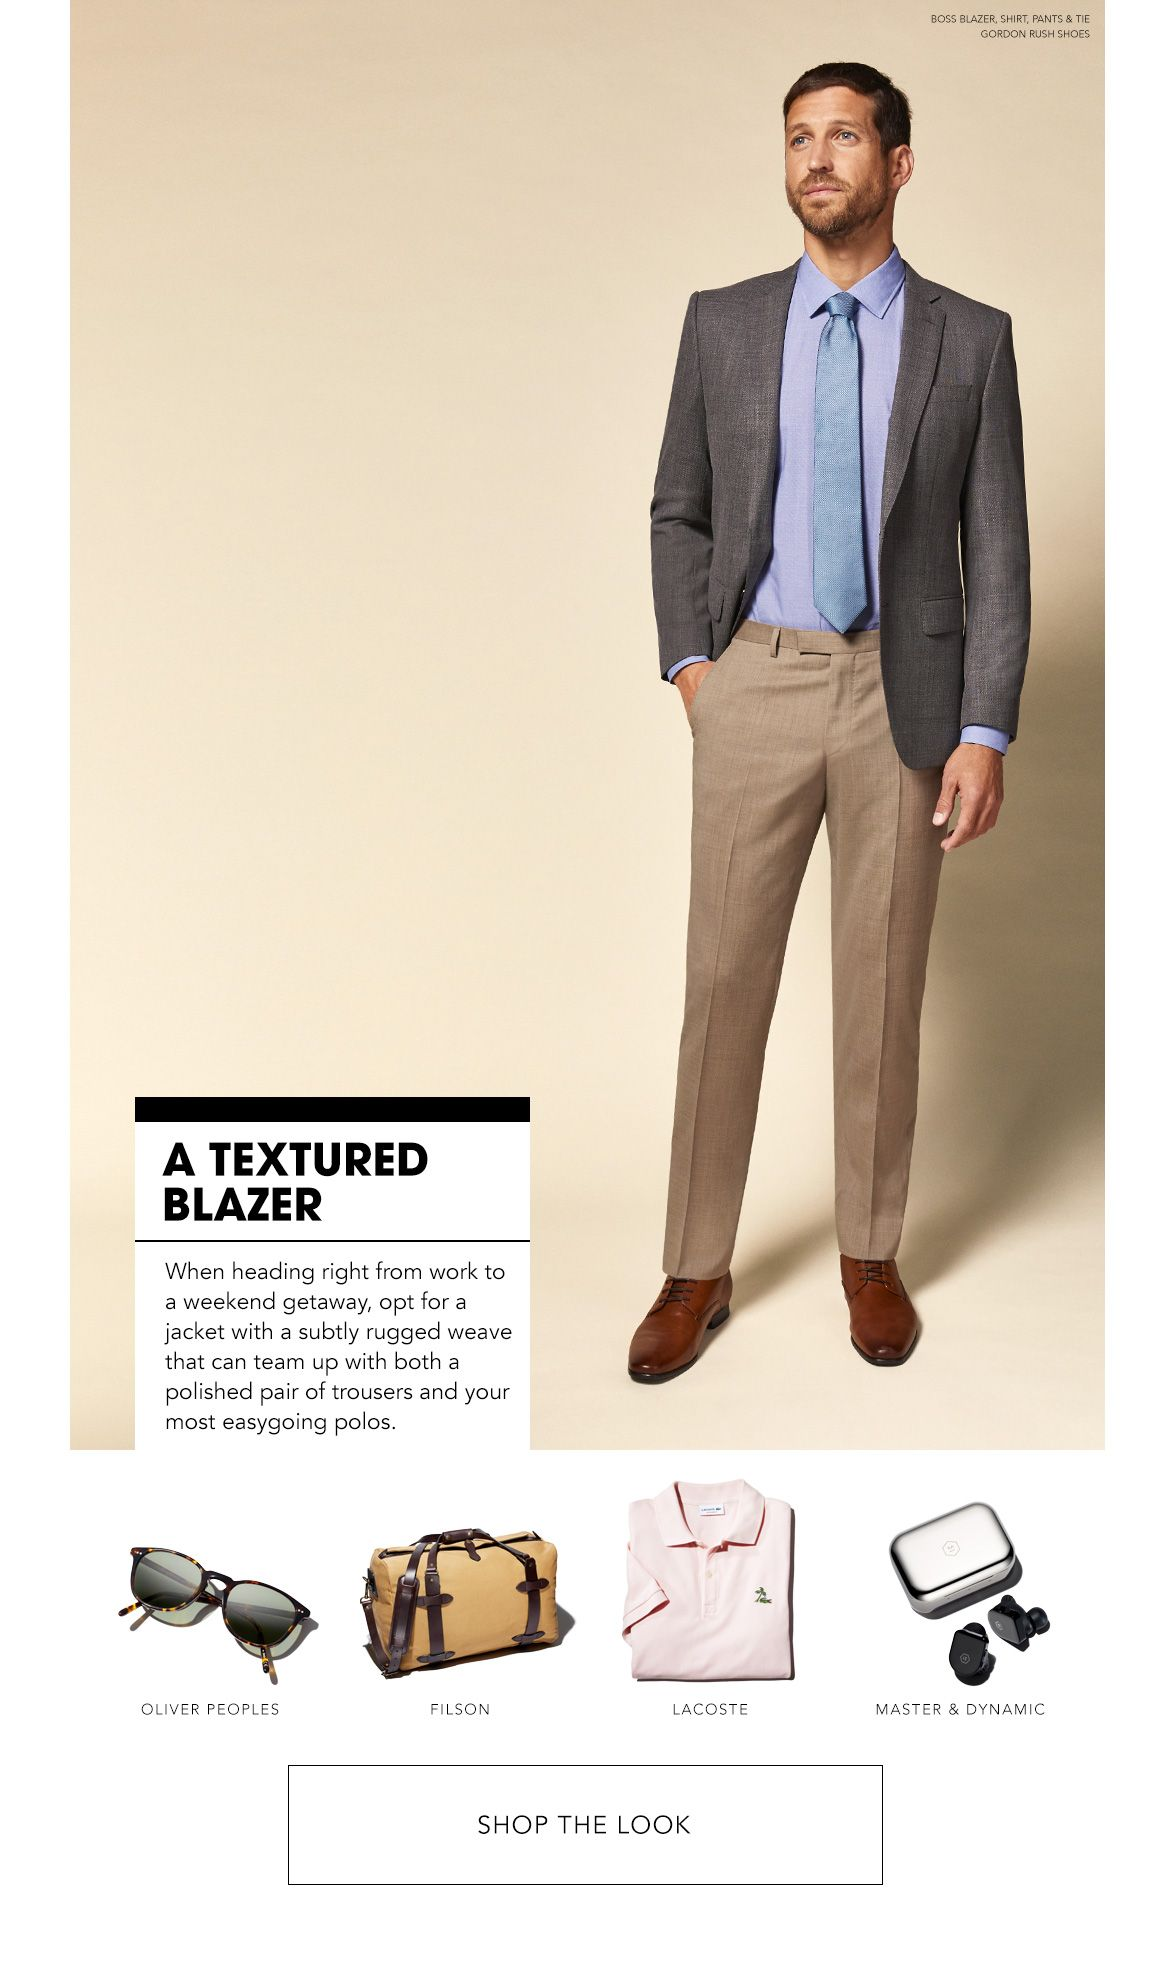 Styled for a Texture Blazer